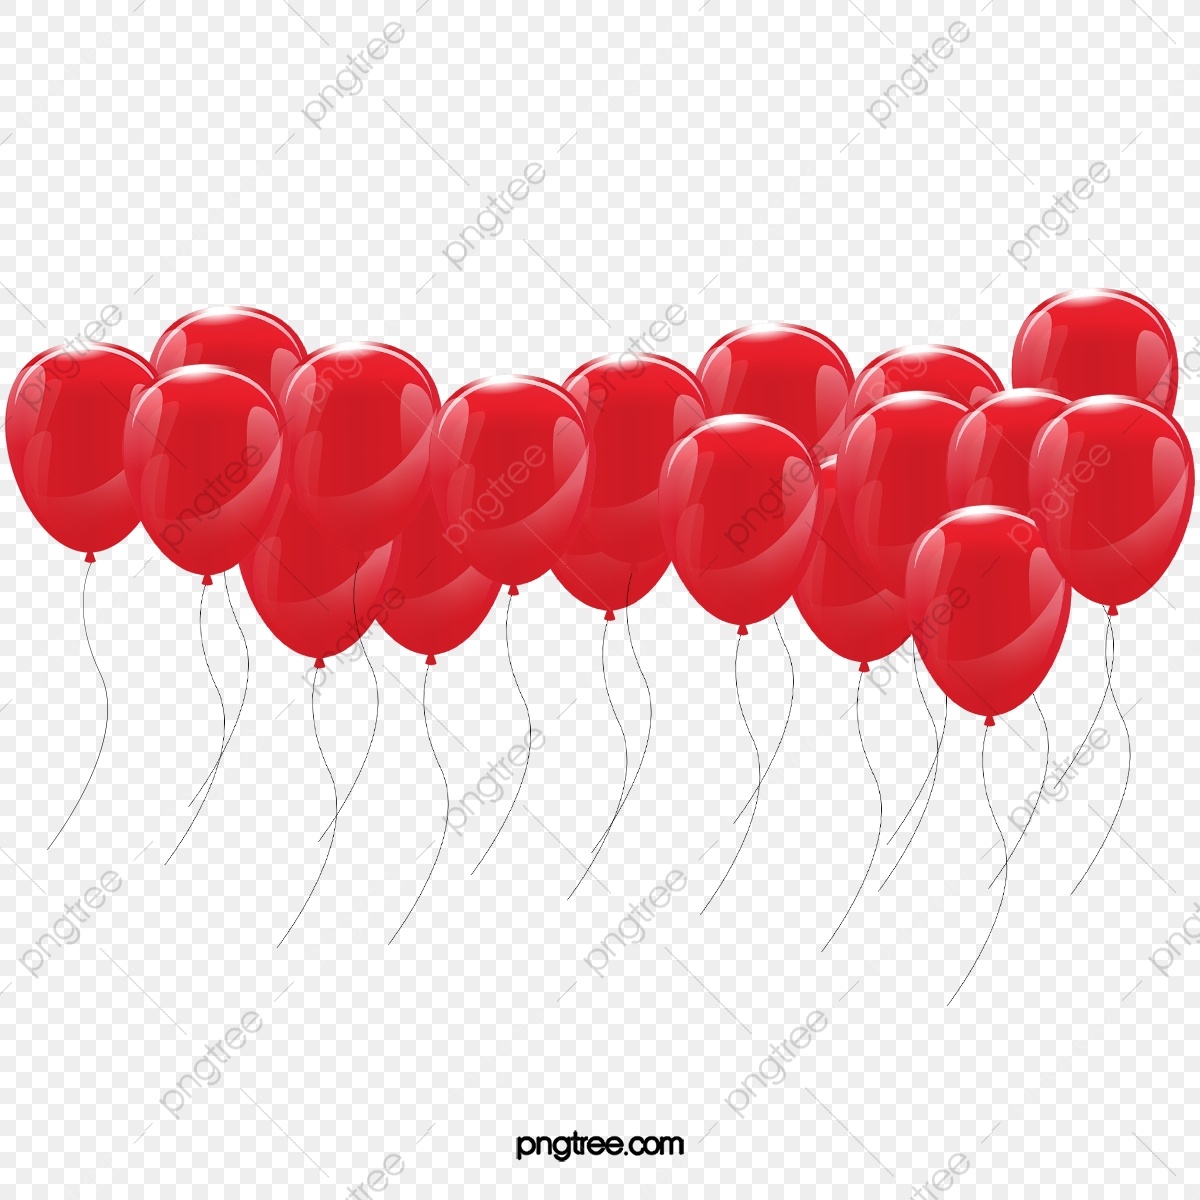 Red Balloon, Balloon Clipart, Red, Balloon PNG Transparent.